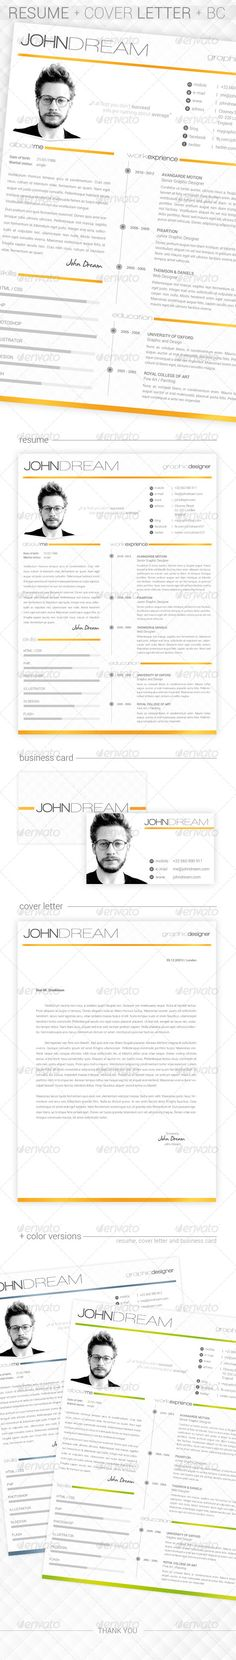 Elegant Resume and Cover Letter Publication Layout Inspiration - Copy Of A Resume Cover Letter